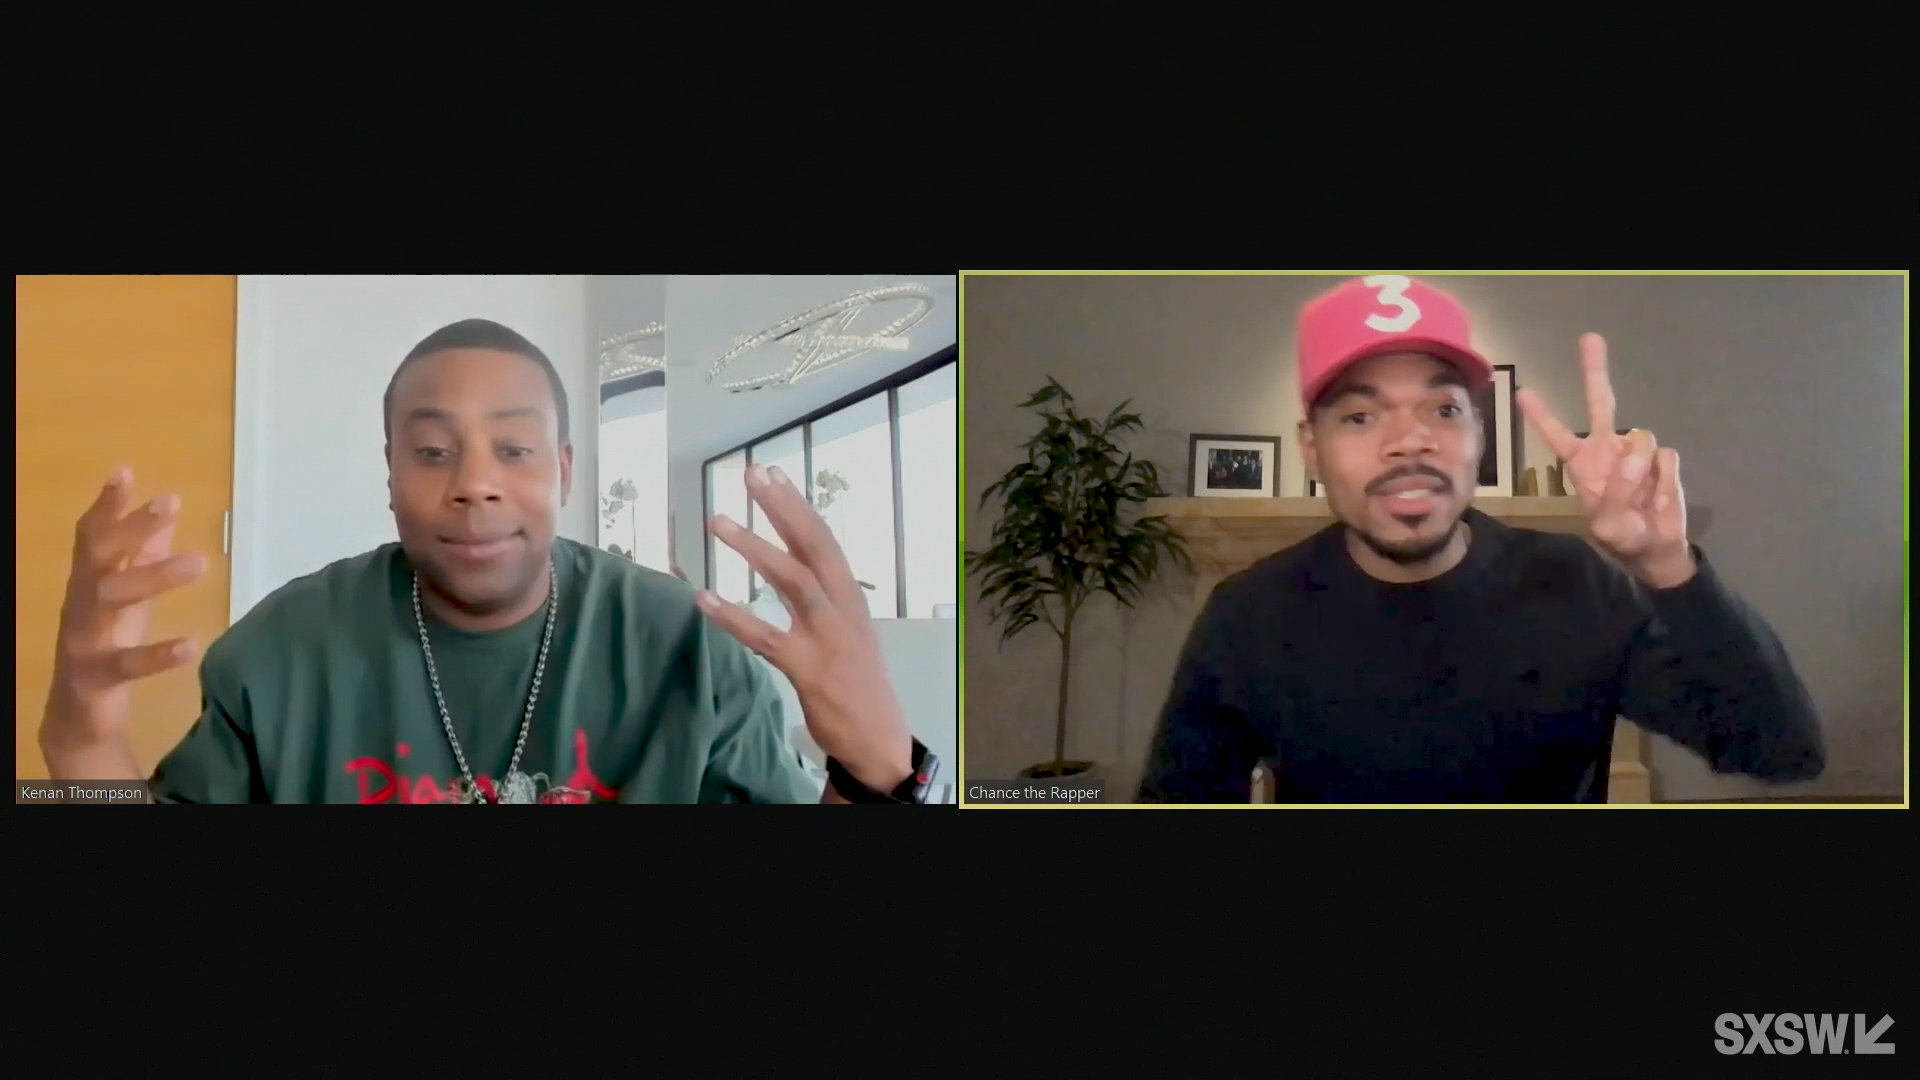 """From left: Kenan Thompson and Chance the Rapper speak at the featured session """"A Conversation with Kenan Thompson and Chance the Rapper"""" during SXSW Online on March 17, 2021."""